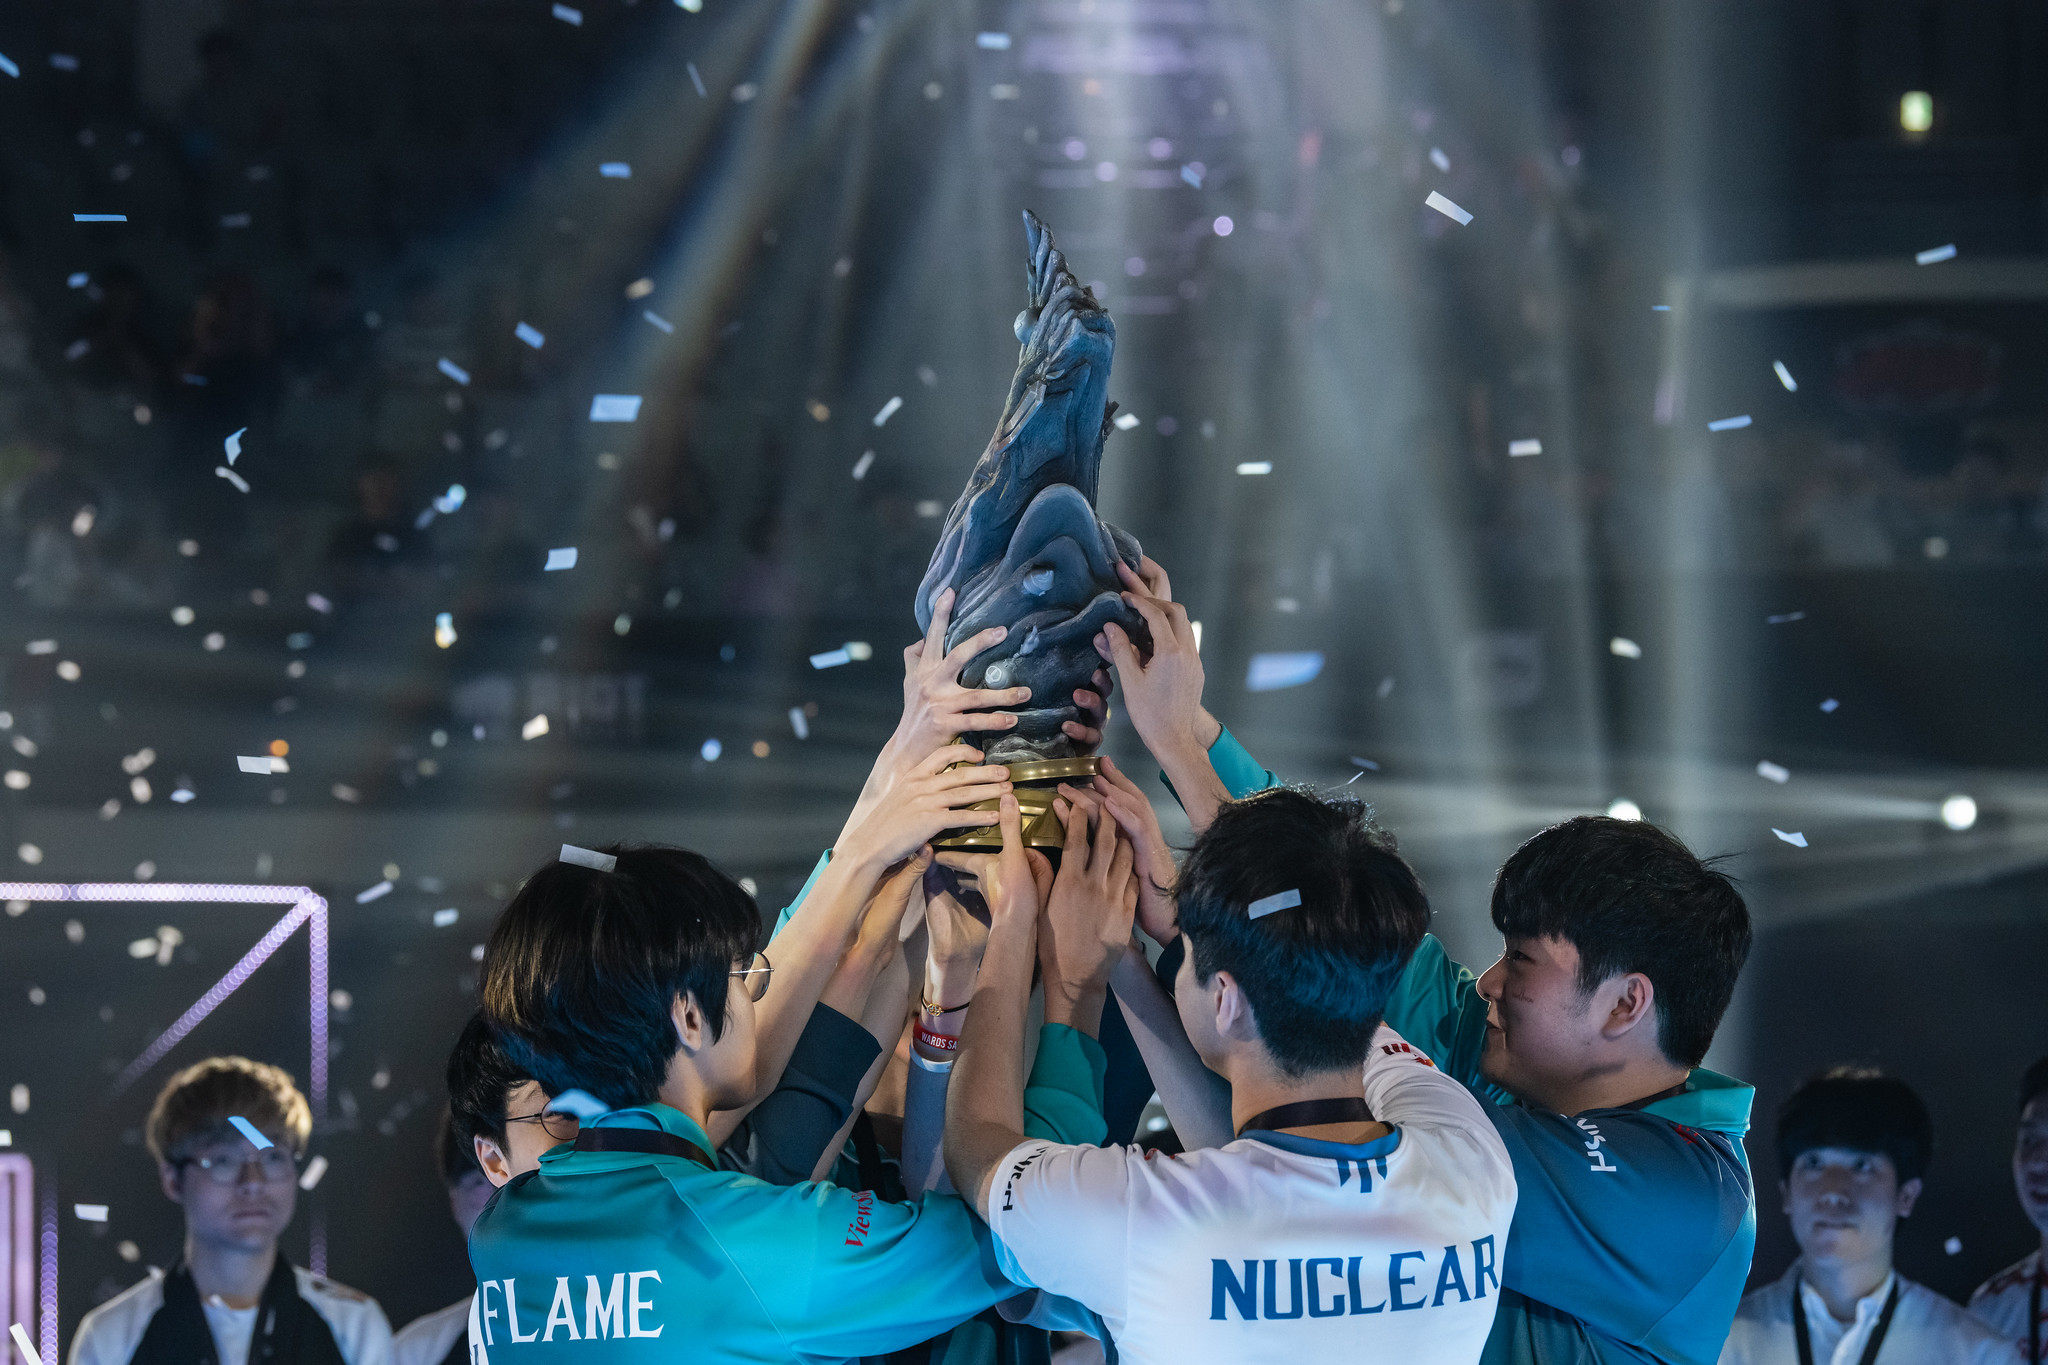 It took the LCK four games to defeat their LPL rivals in the relay-race grand final. (Photo via Riot Games)